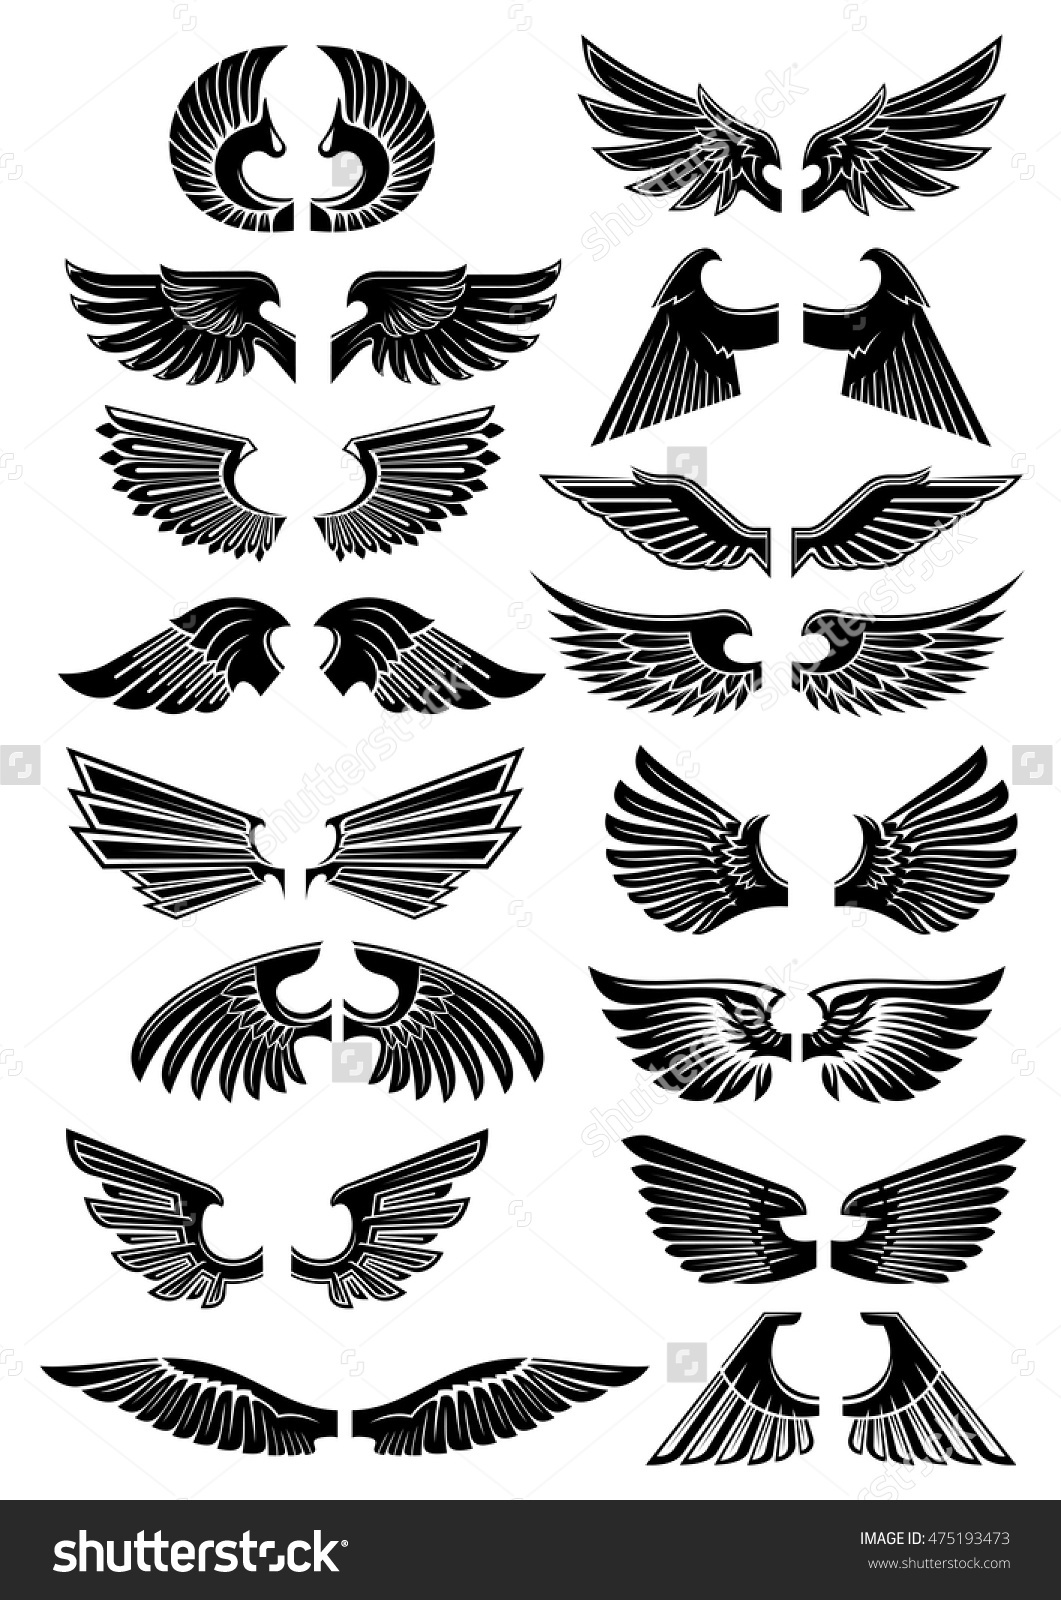 Wings Heraldic Icons Birds Angel Wings Stock Vector 475193473.